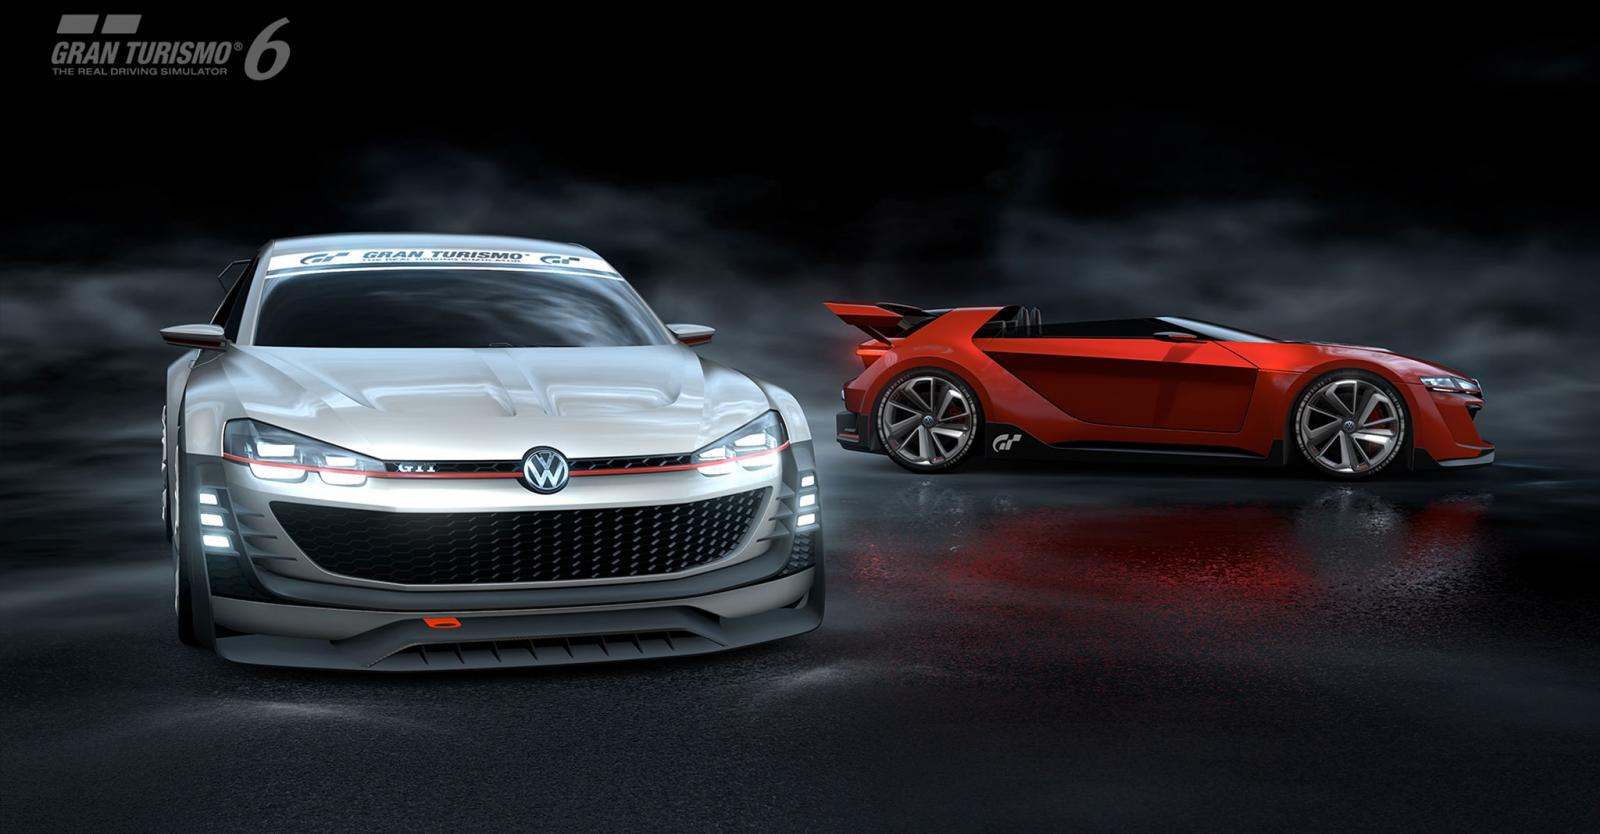 3d Golf Wallpaper For The Home Volkswagen Unveils New Gti Supersport Vision Gran Turismo